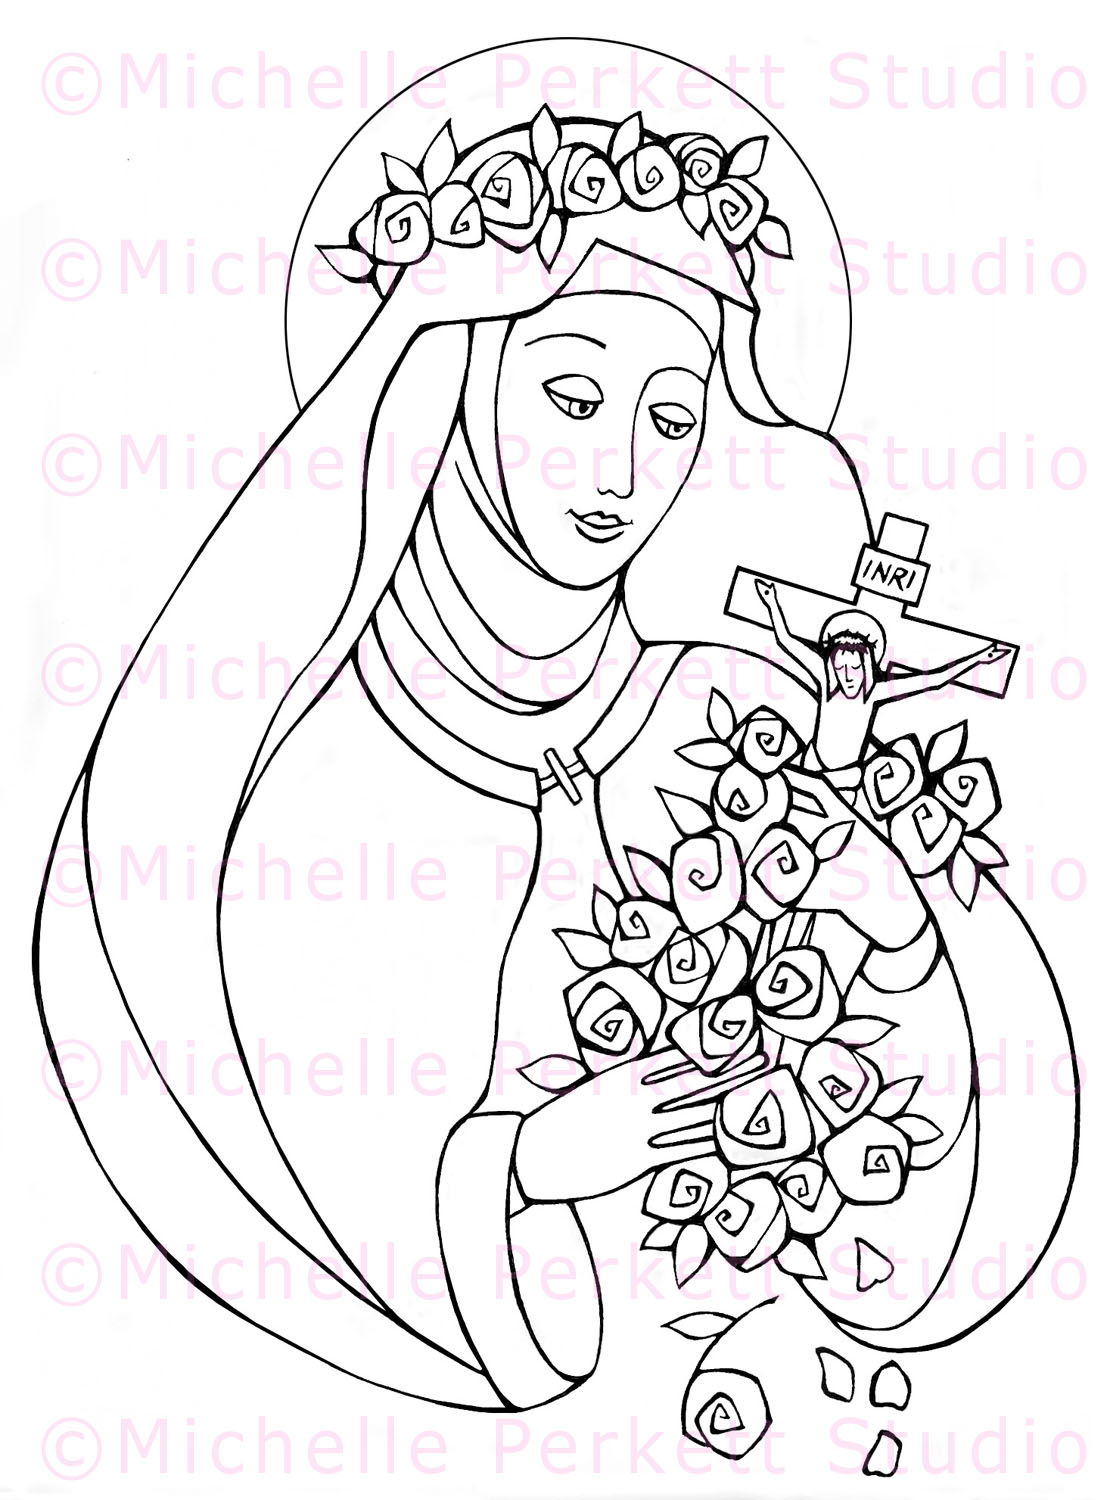 therese of lisieux coloring pages - photo#5